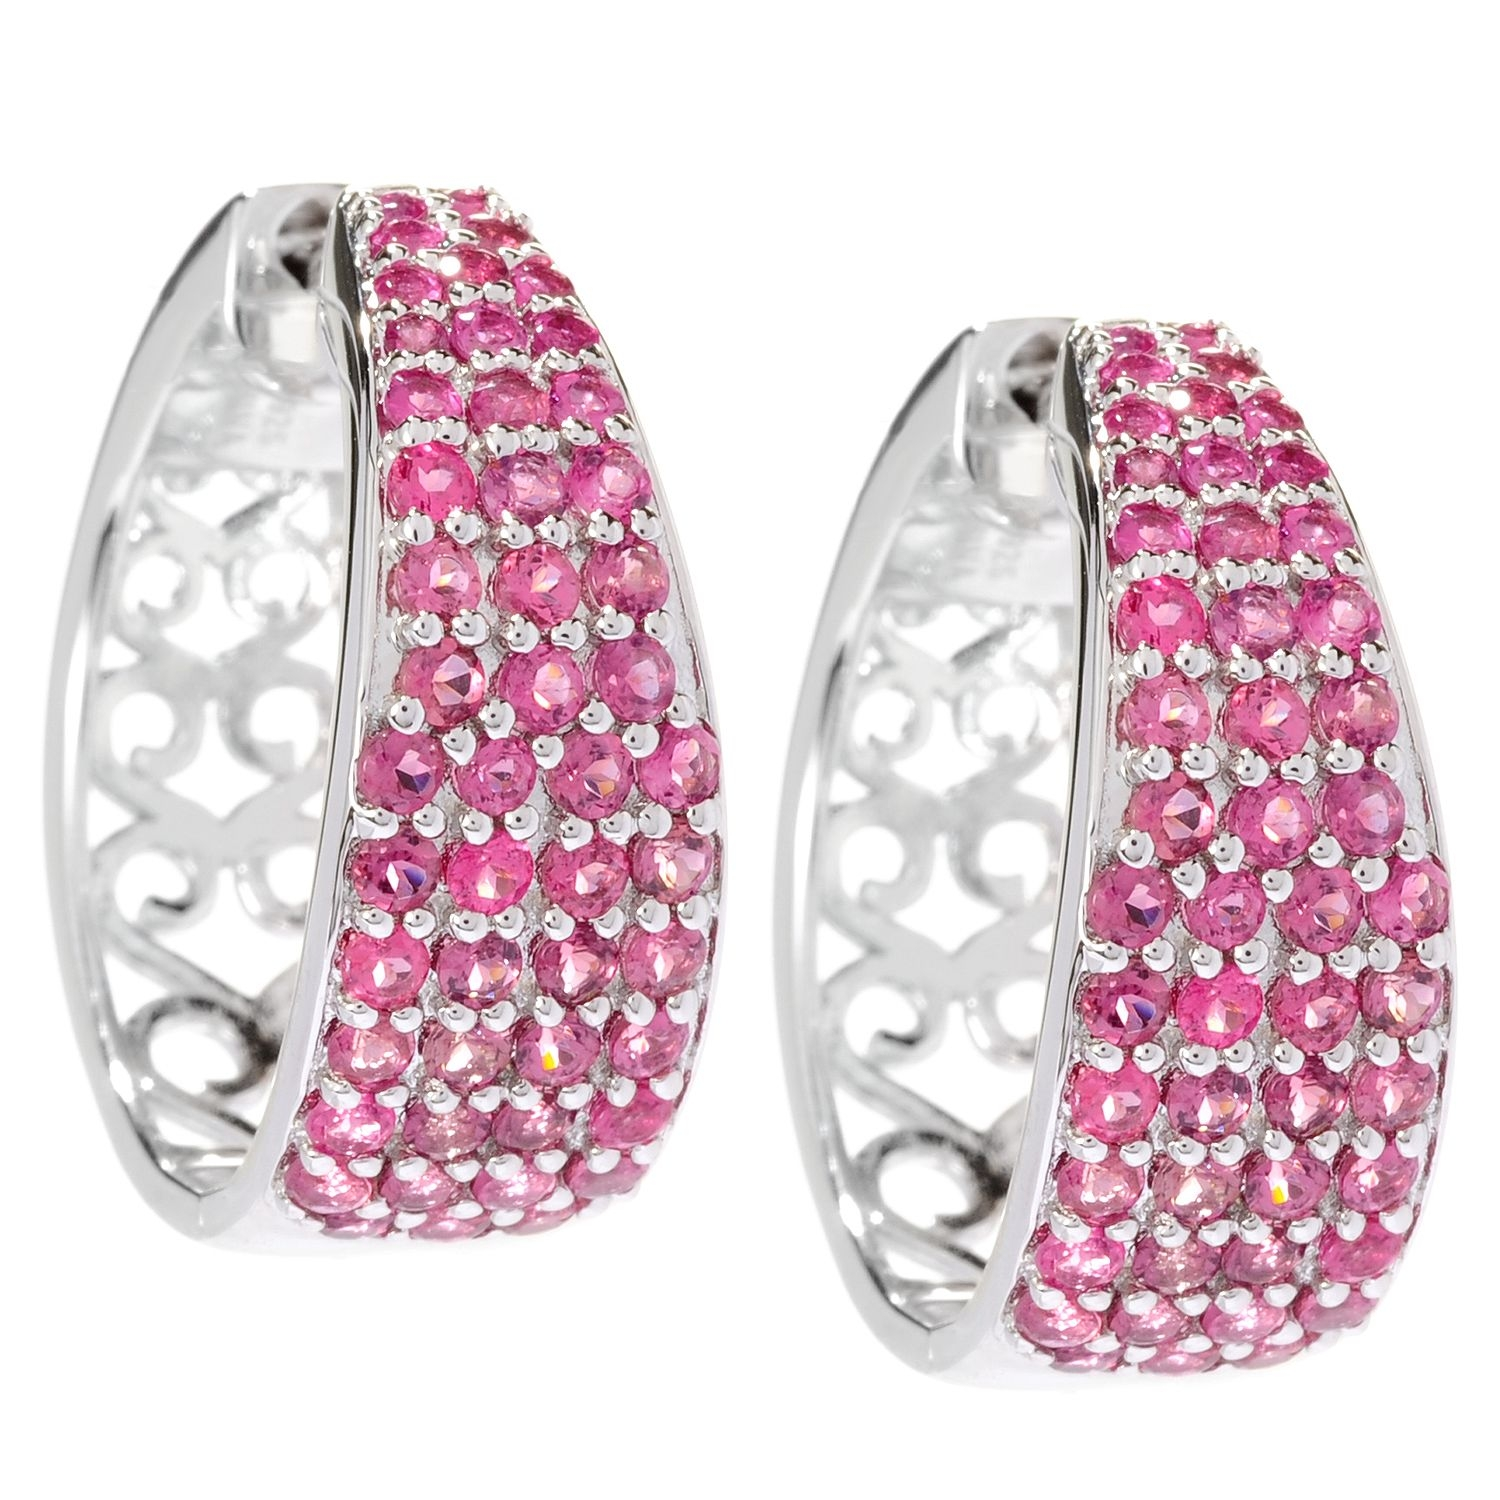 """Sterling Silver 2.8ctw Pink Tourmaline With Clicker Back Hoop Earrings 1""""L"""